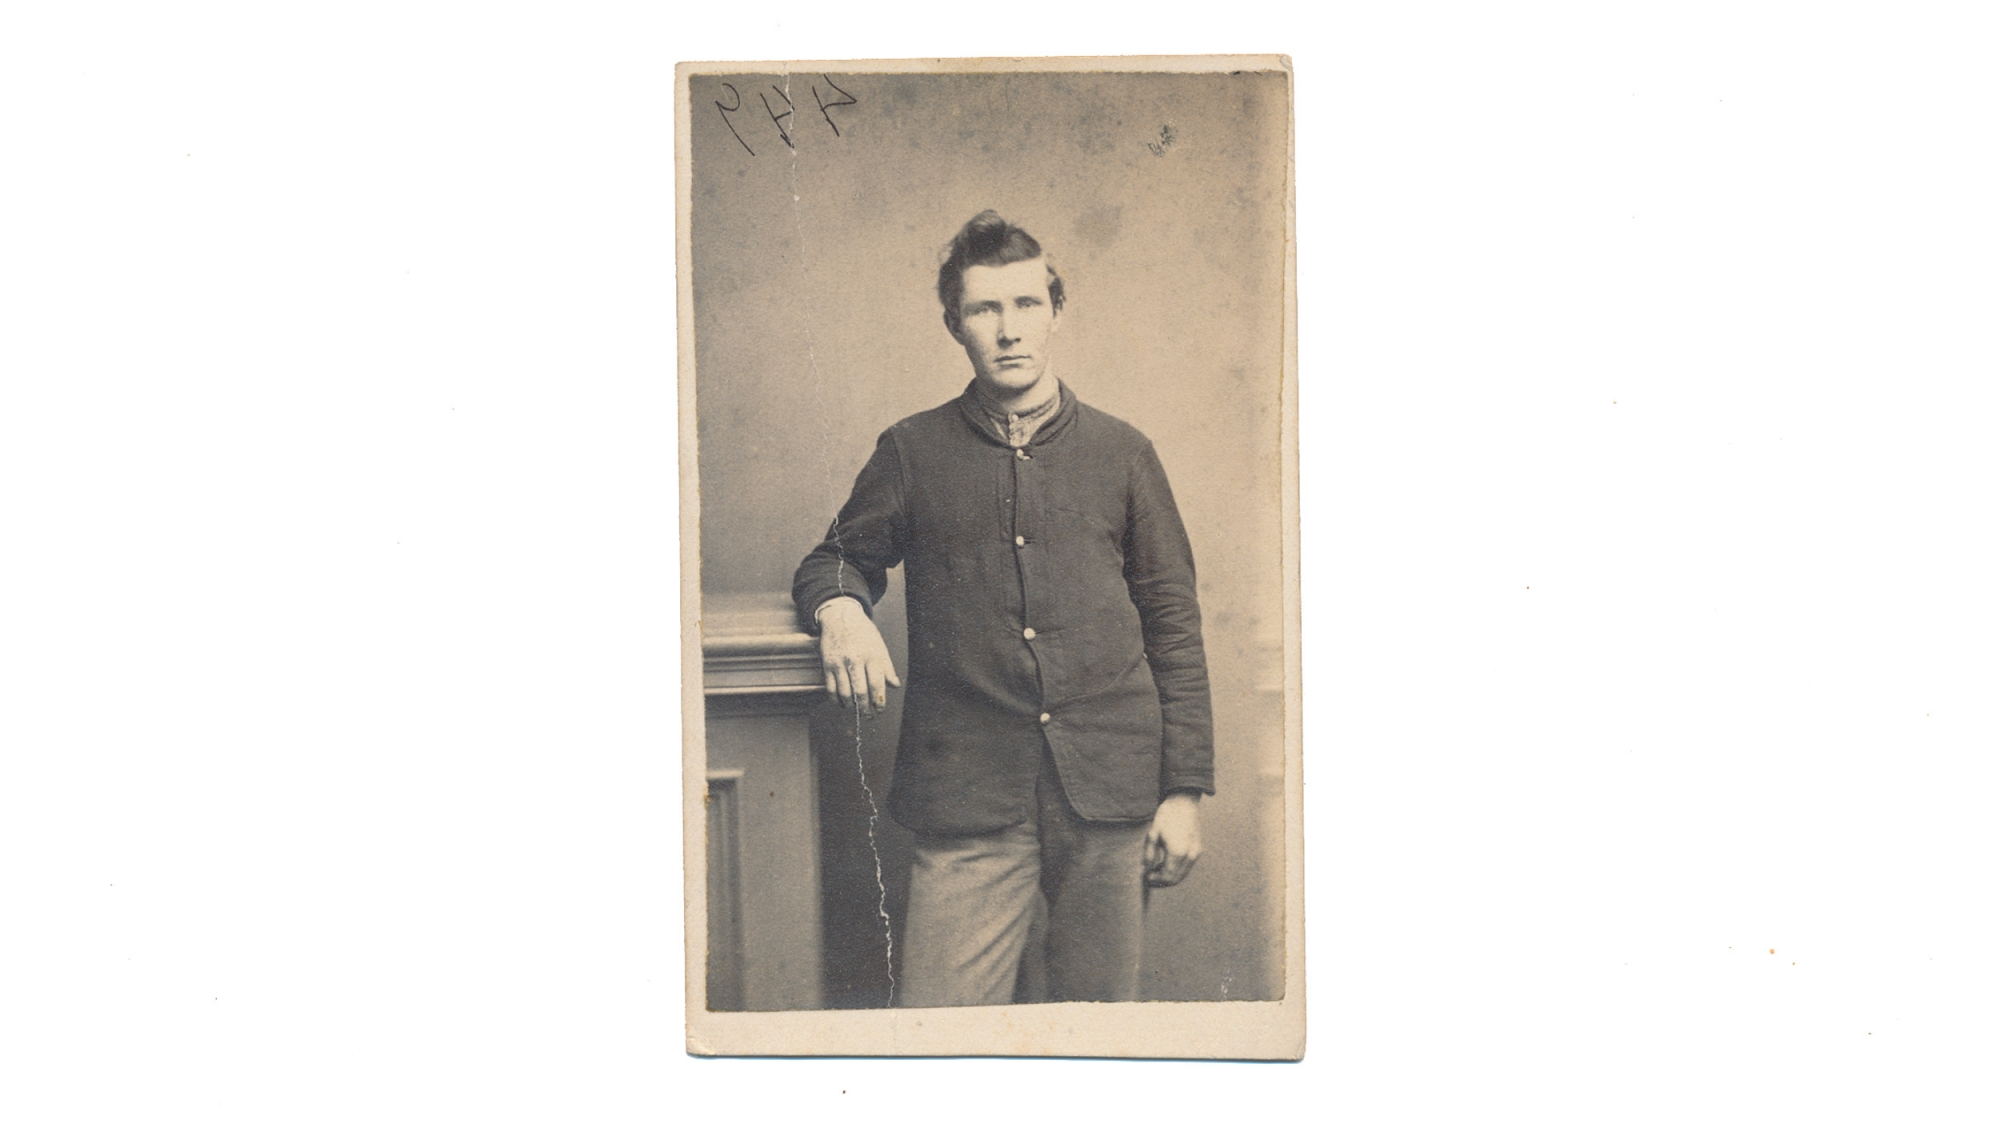 CDV OF CHARLES D. WATSON, 24TH WISCONSIN INFANTRY